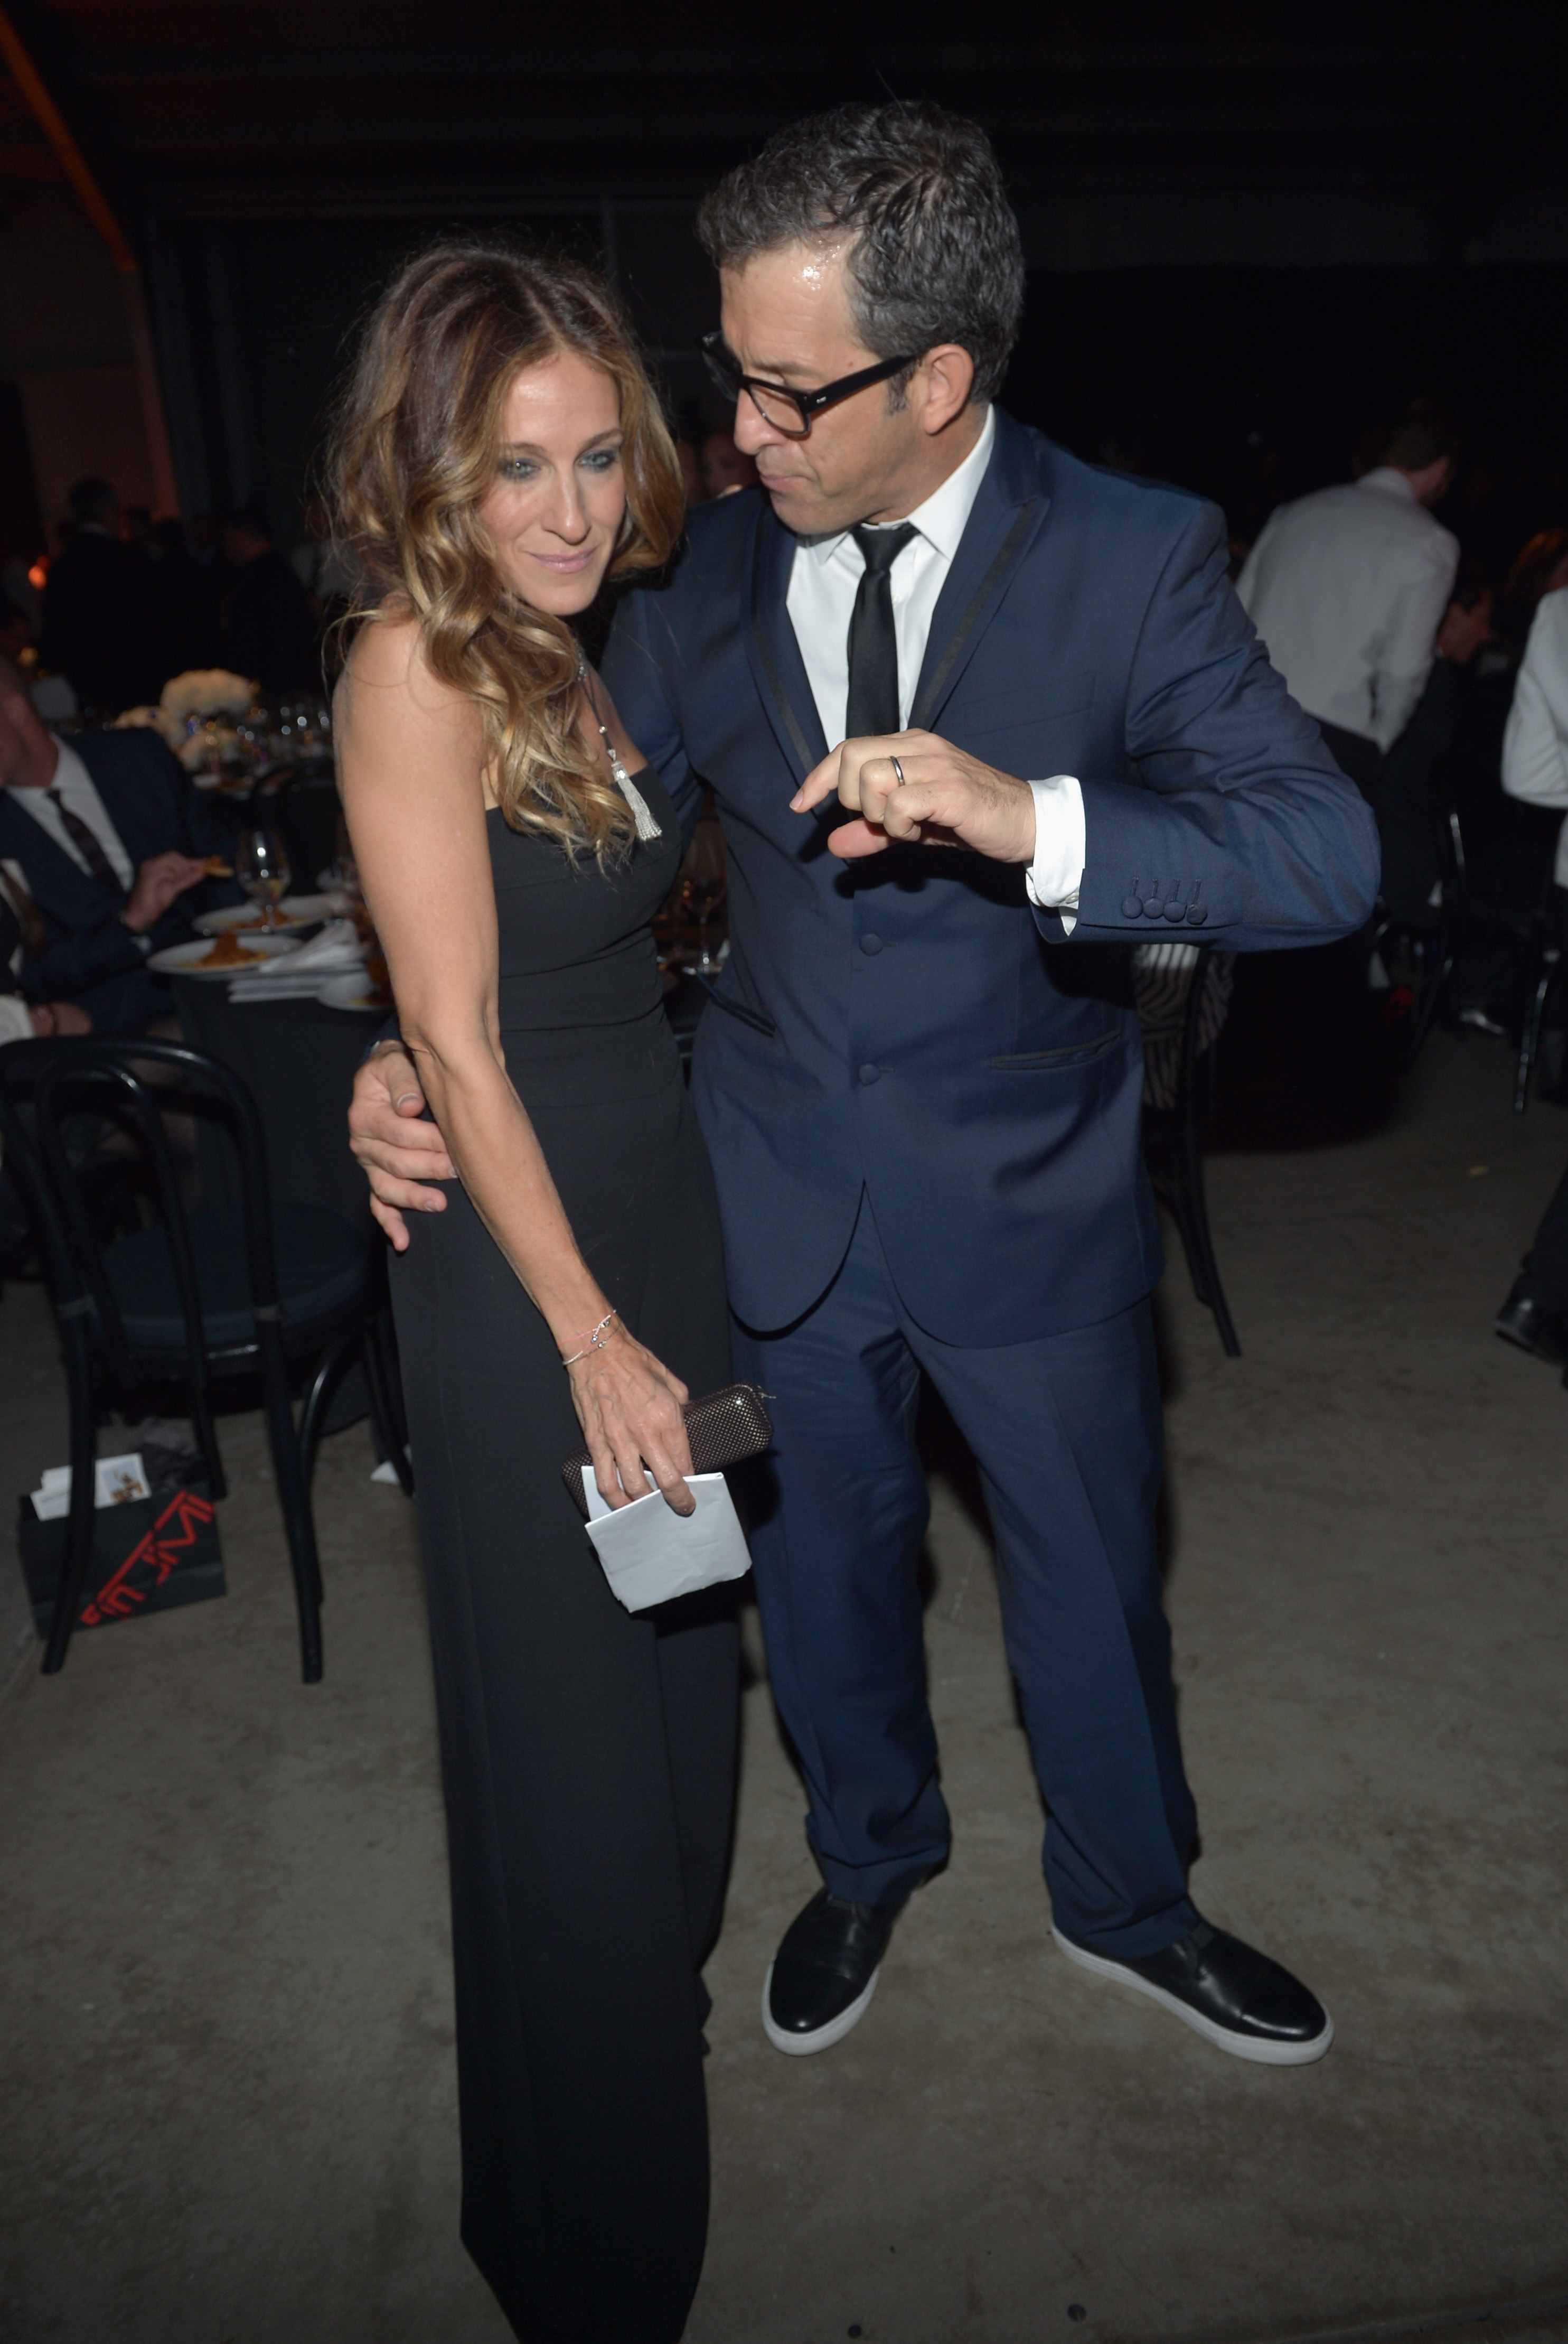 Sarah Jessica Parker stepped out in LA for the event.